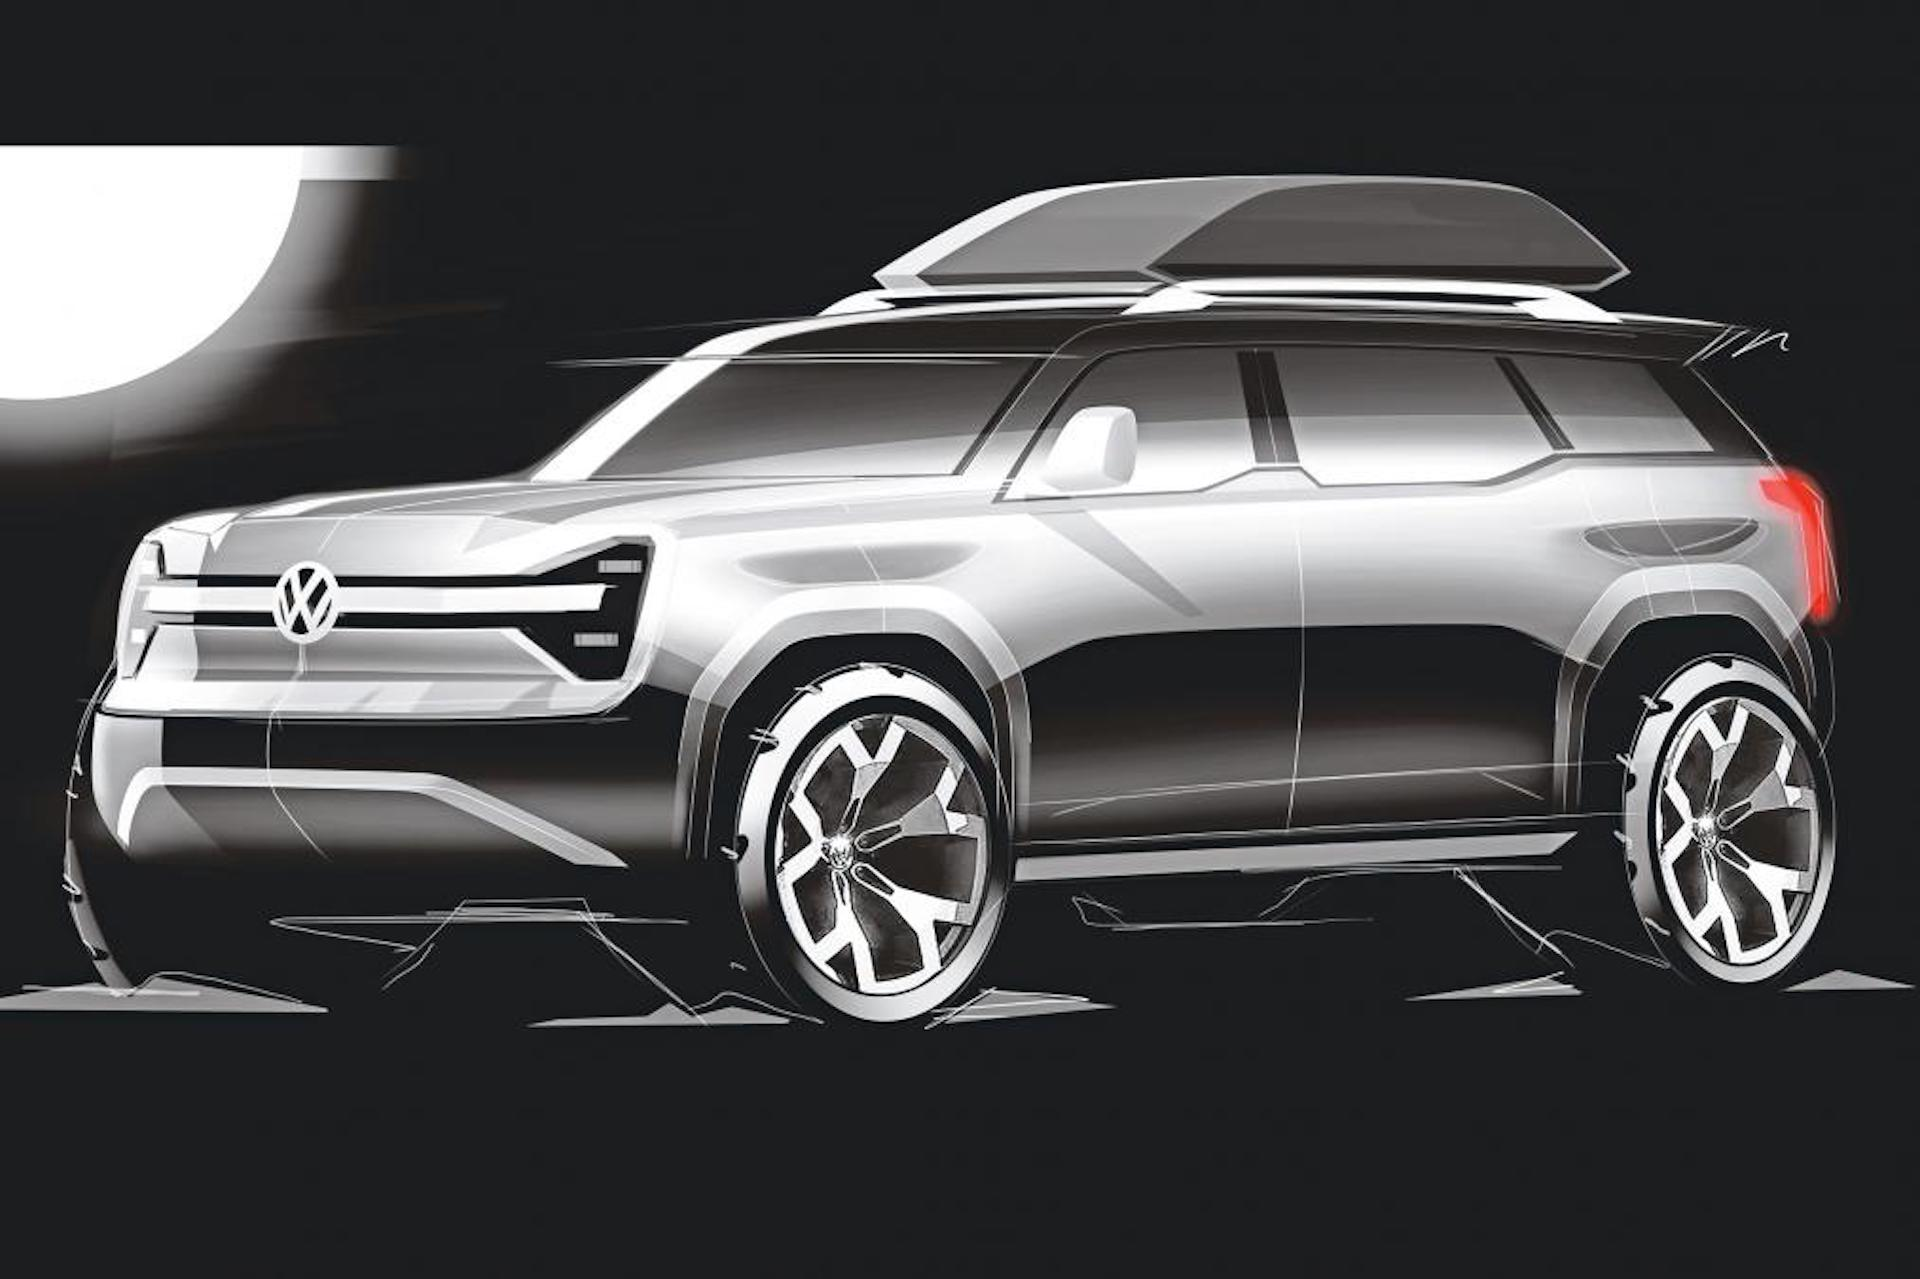 Electric Volkswagen off-road SUV on the table